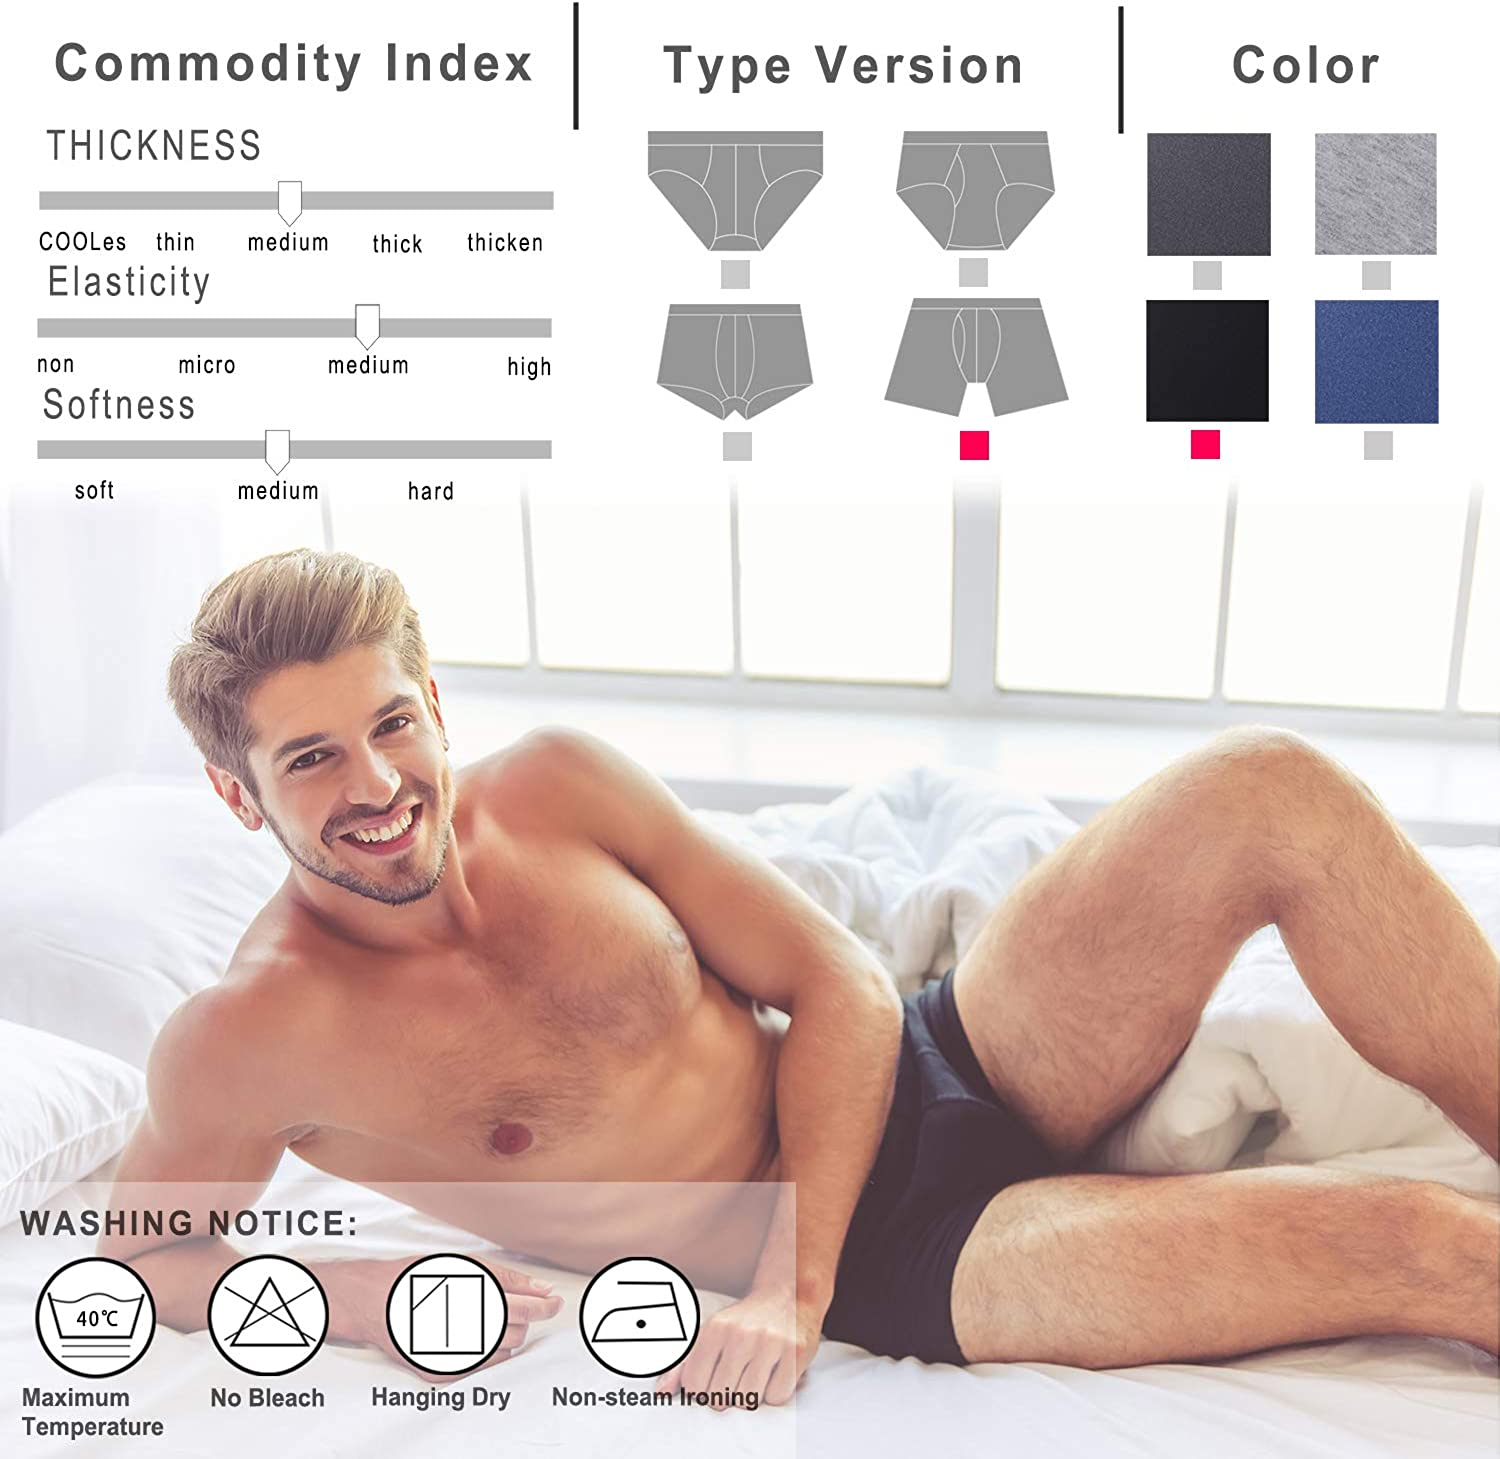 Ultimate Soft Cotton 4-Pack or 8-Pack Boxer Briefs with Fly LoBeaus Mens Underwear Trunks Long Leg Length